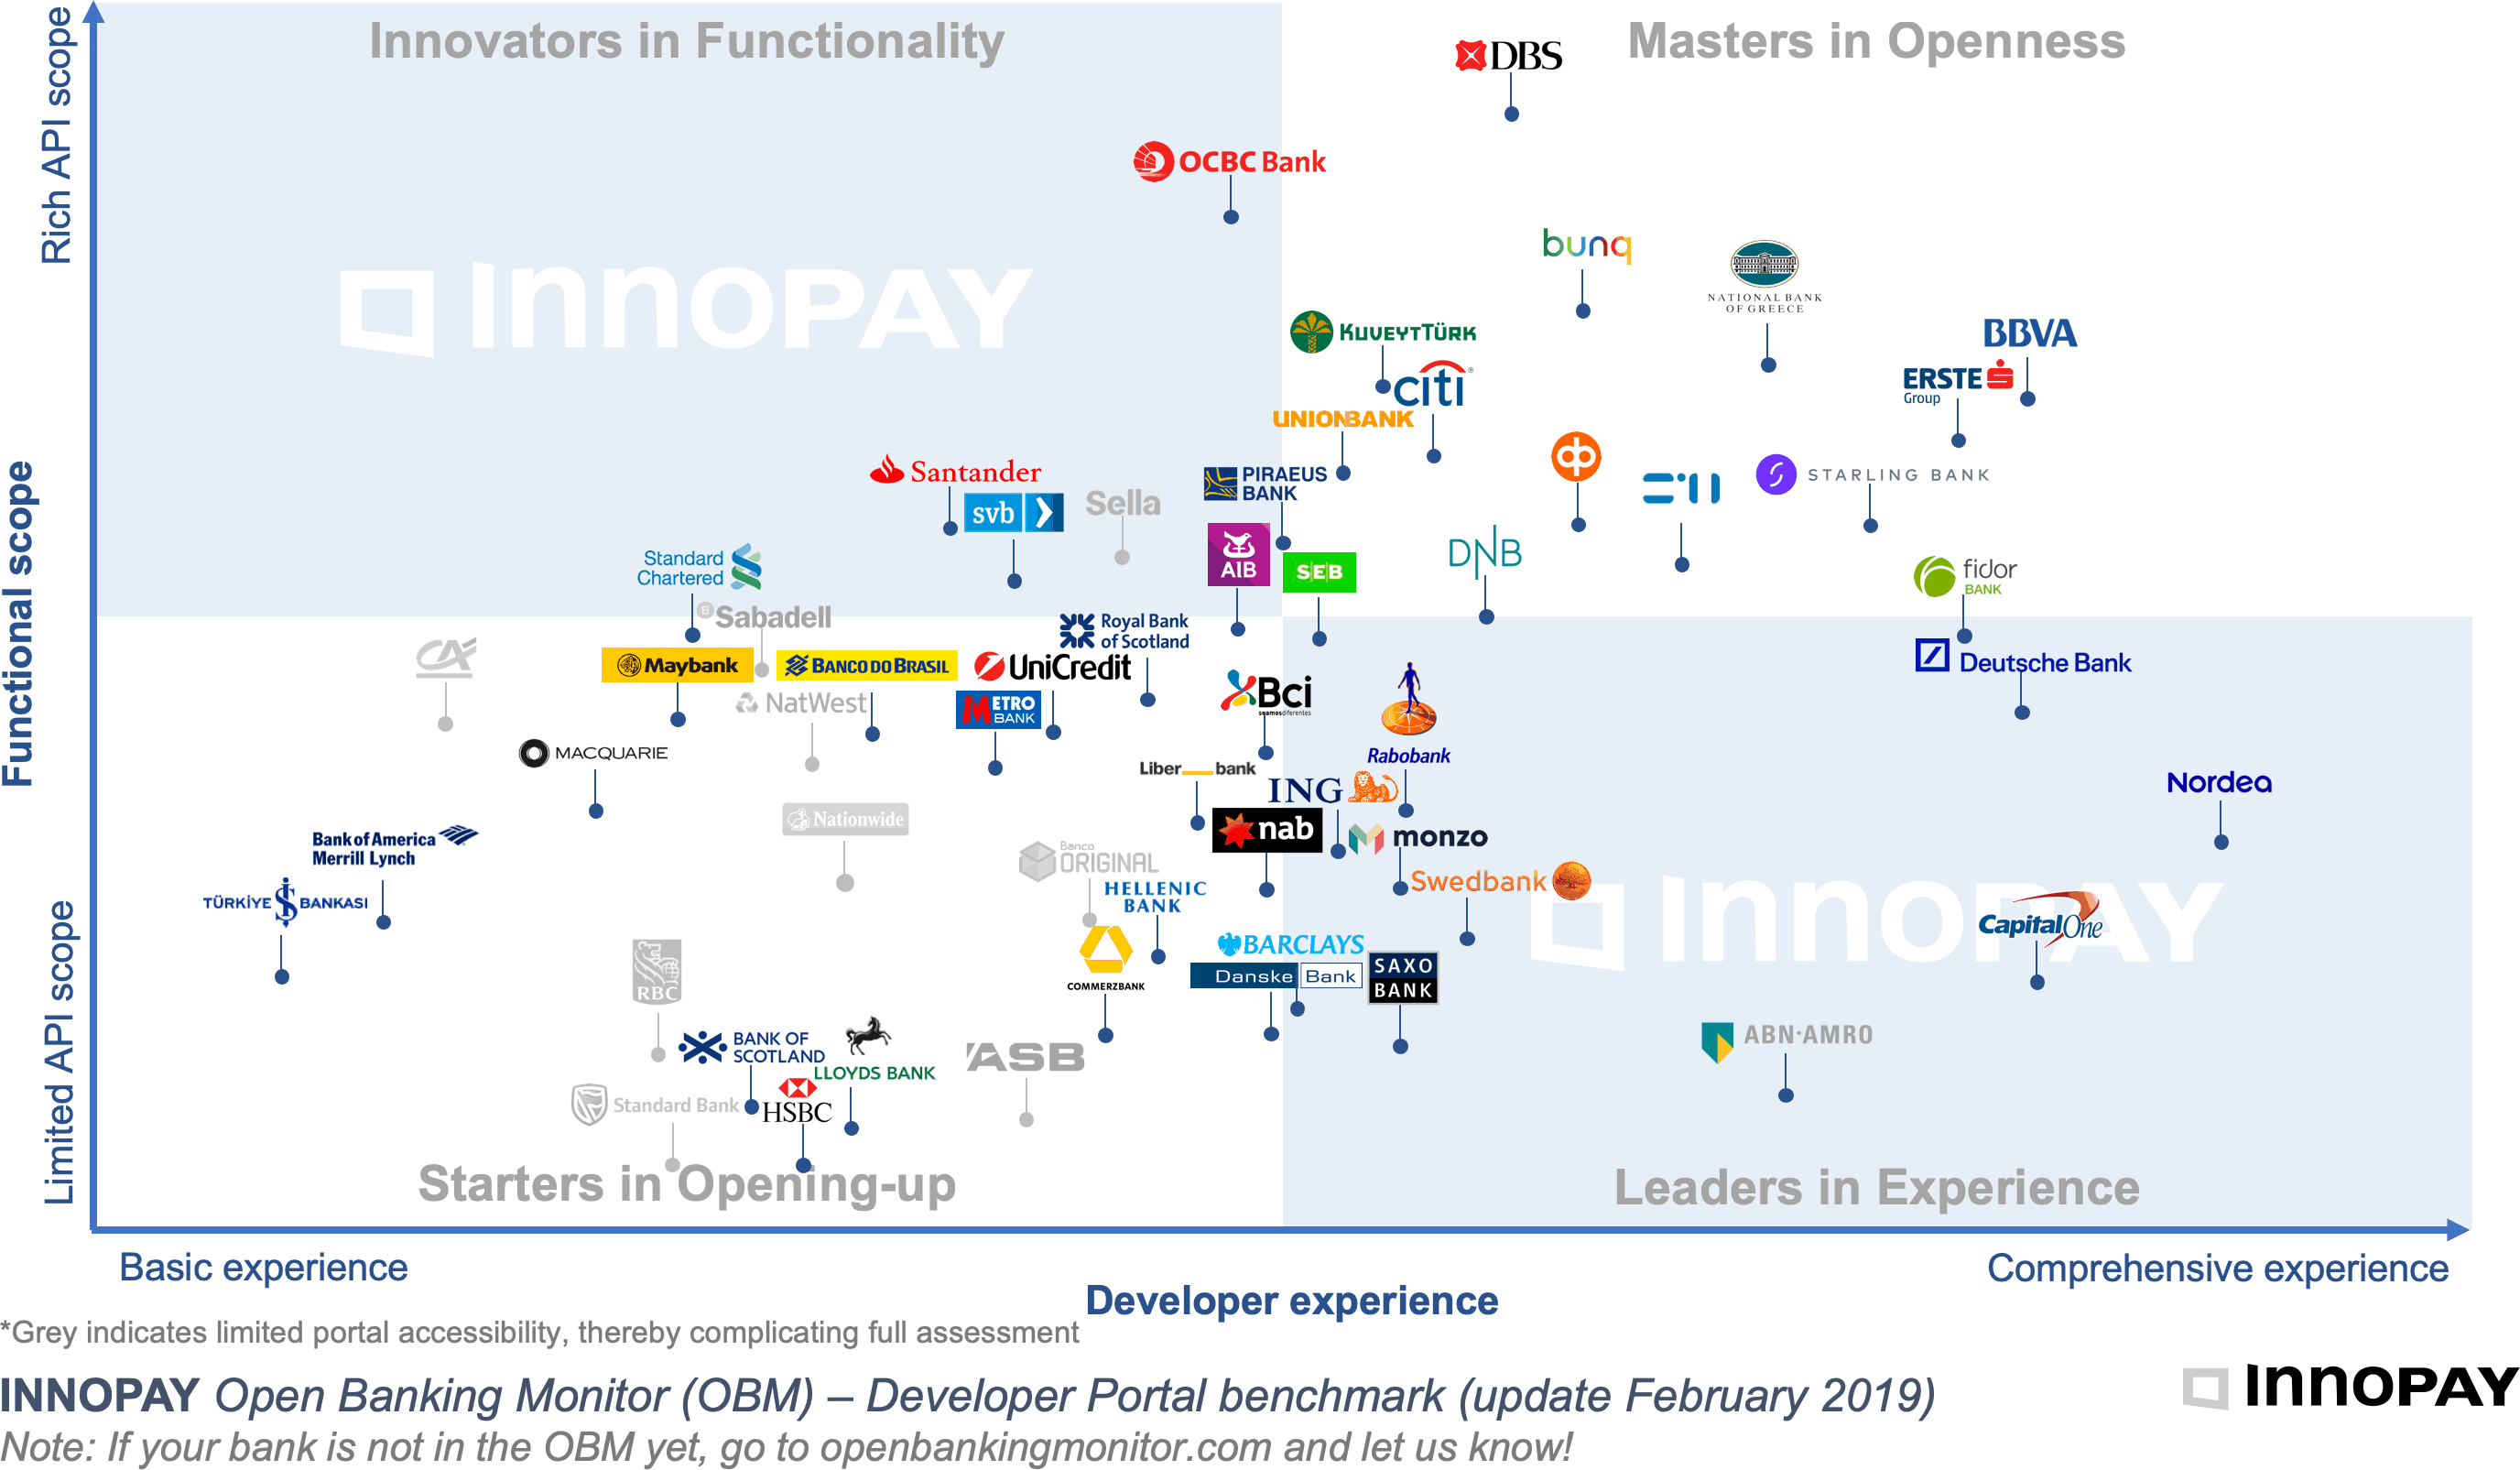 Open Banking Monitor (Innopay)